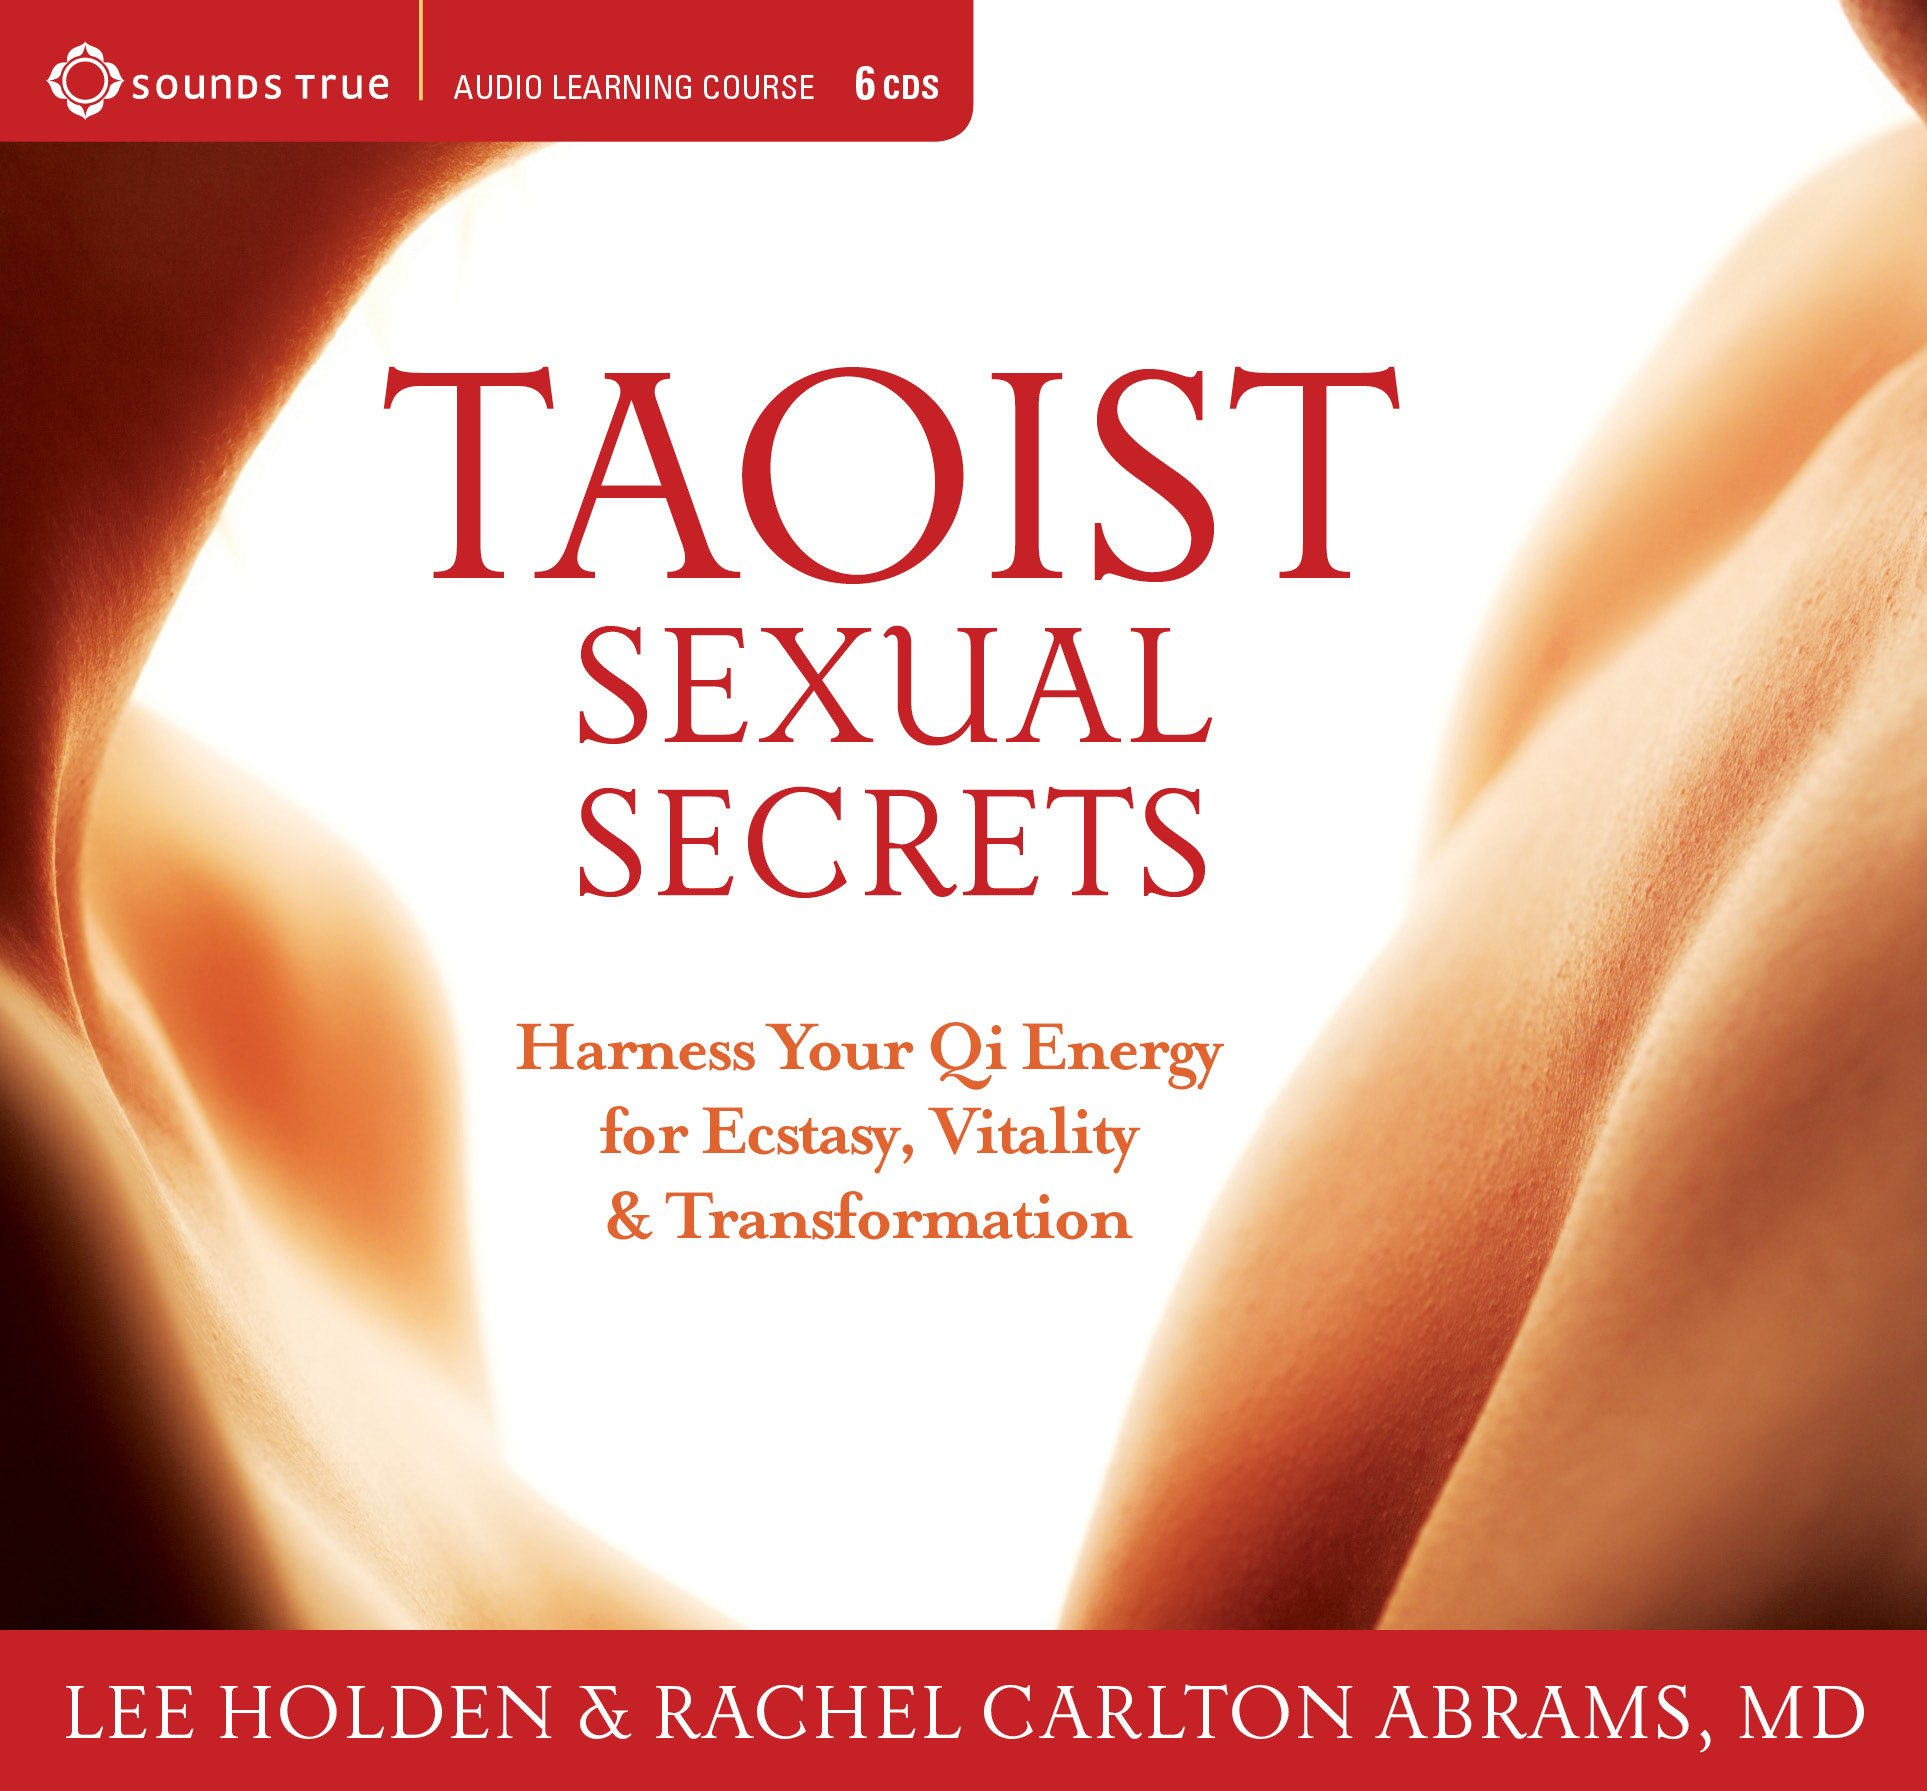 Taoist Sexual Secrets: Harness Your Qi Energy for Ecstasy, Vitality, and Transformation by Sounds True, Incorporated